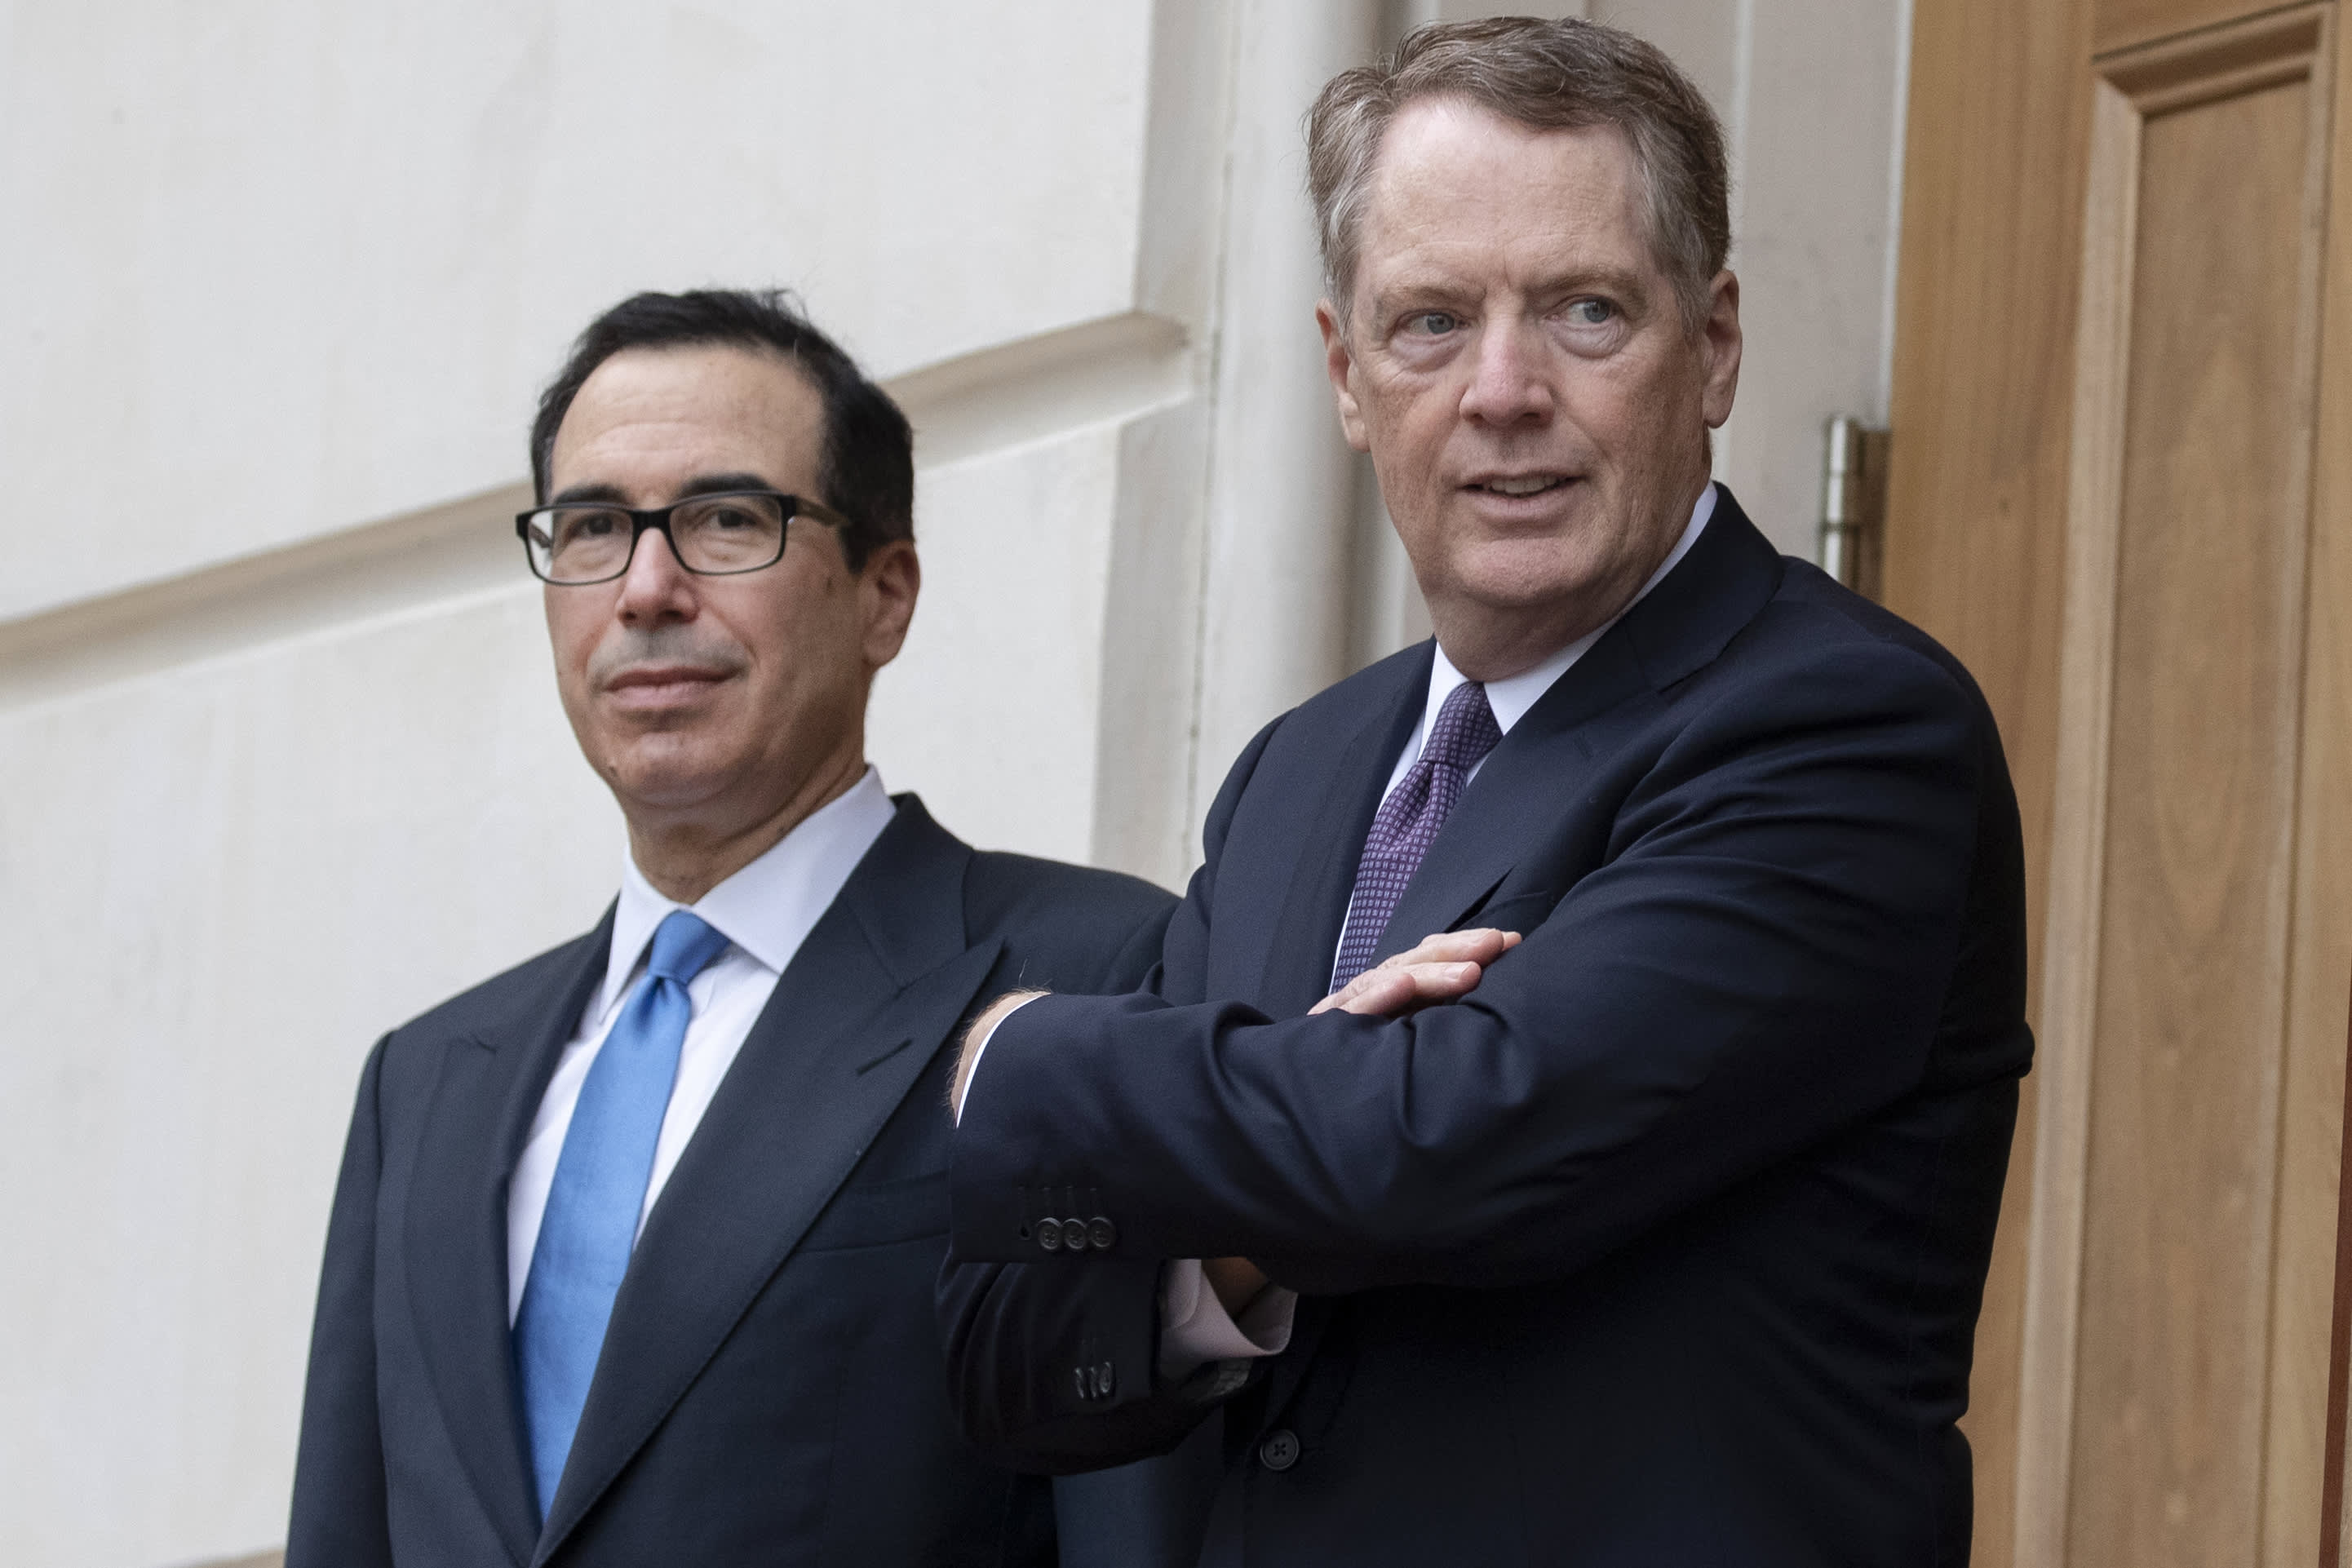 Mnuchin and Lighthizer opposed Trump tariffs on Mexico, source says